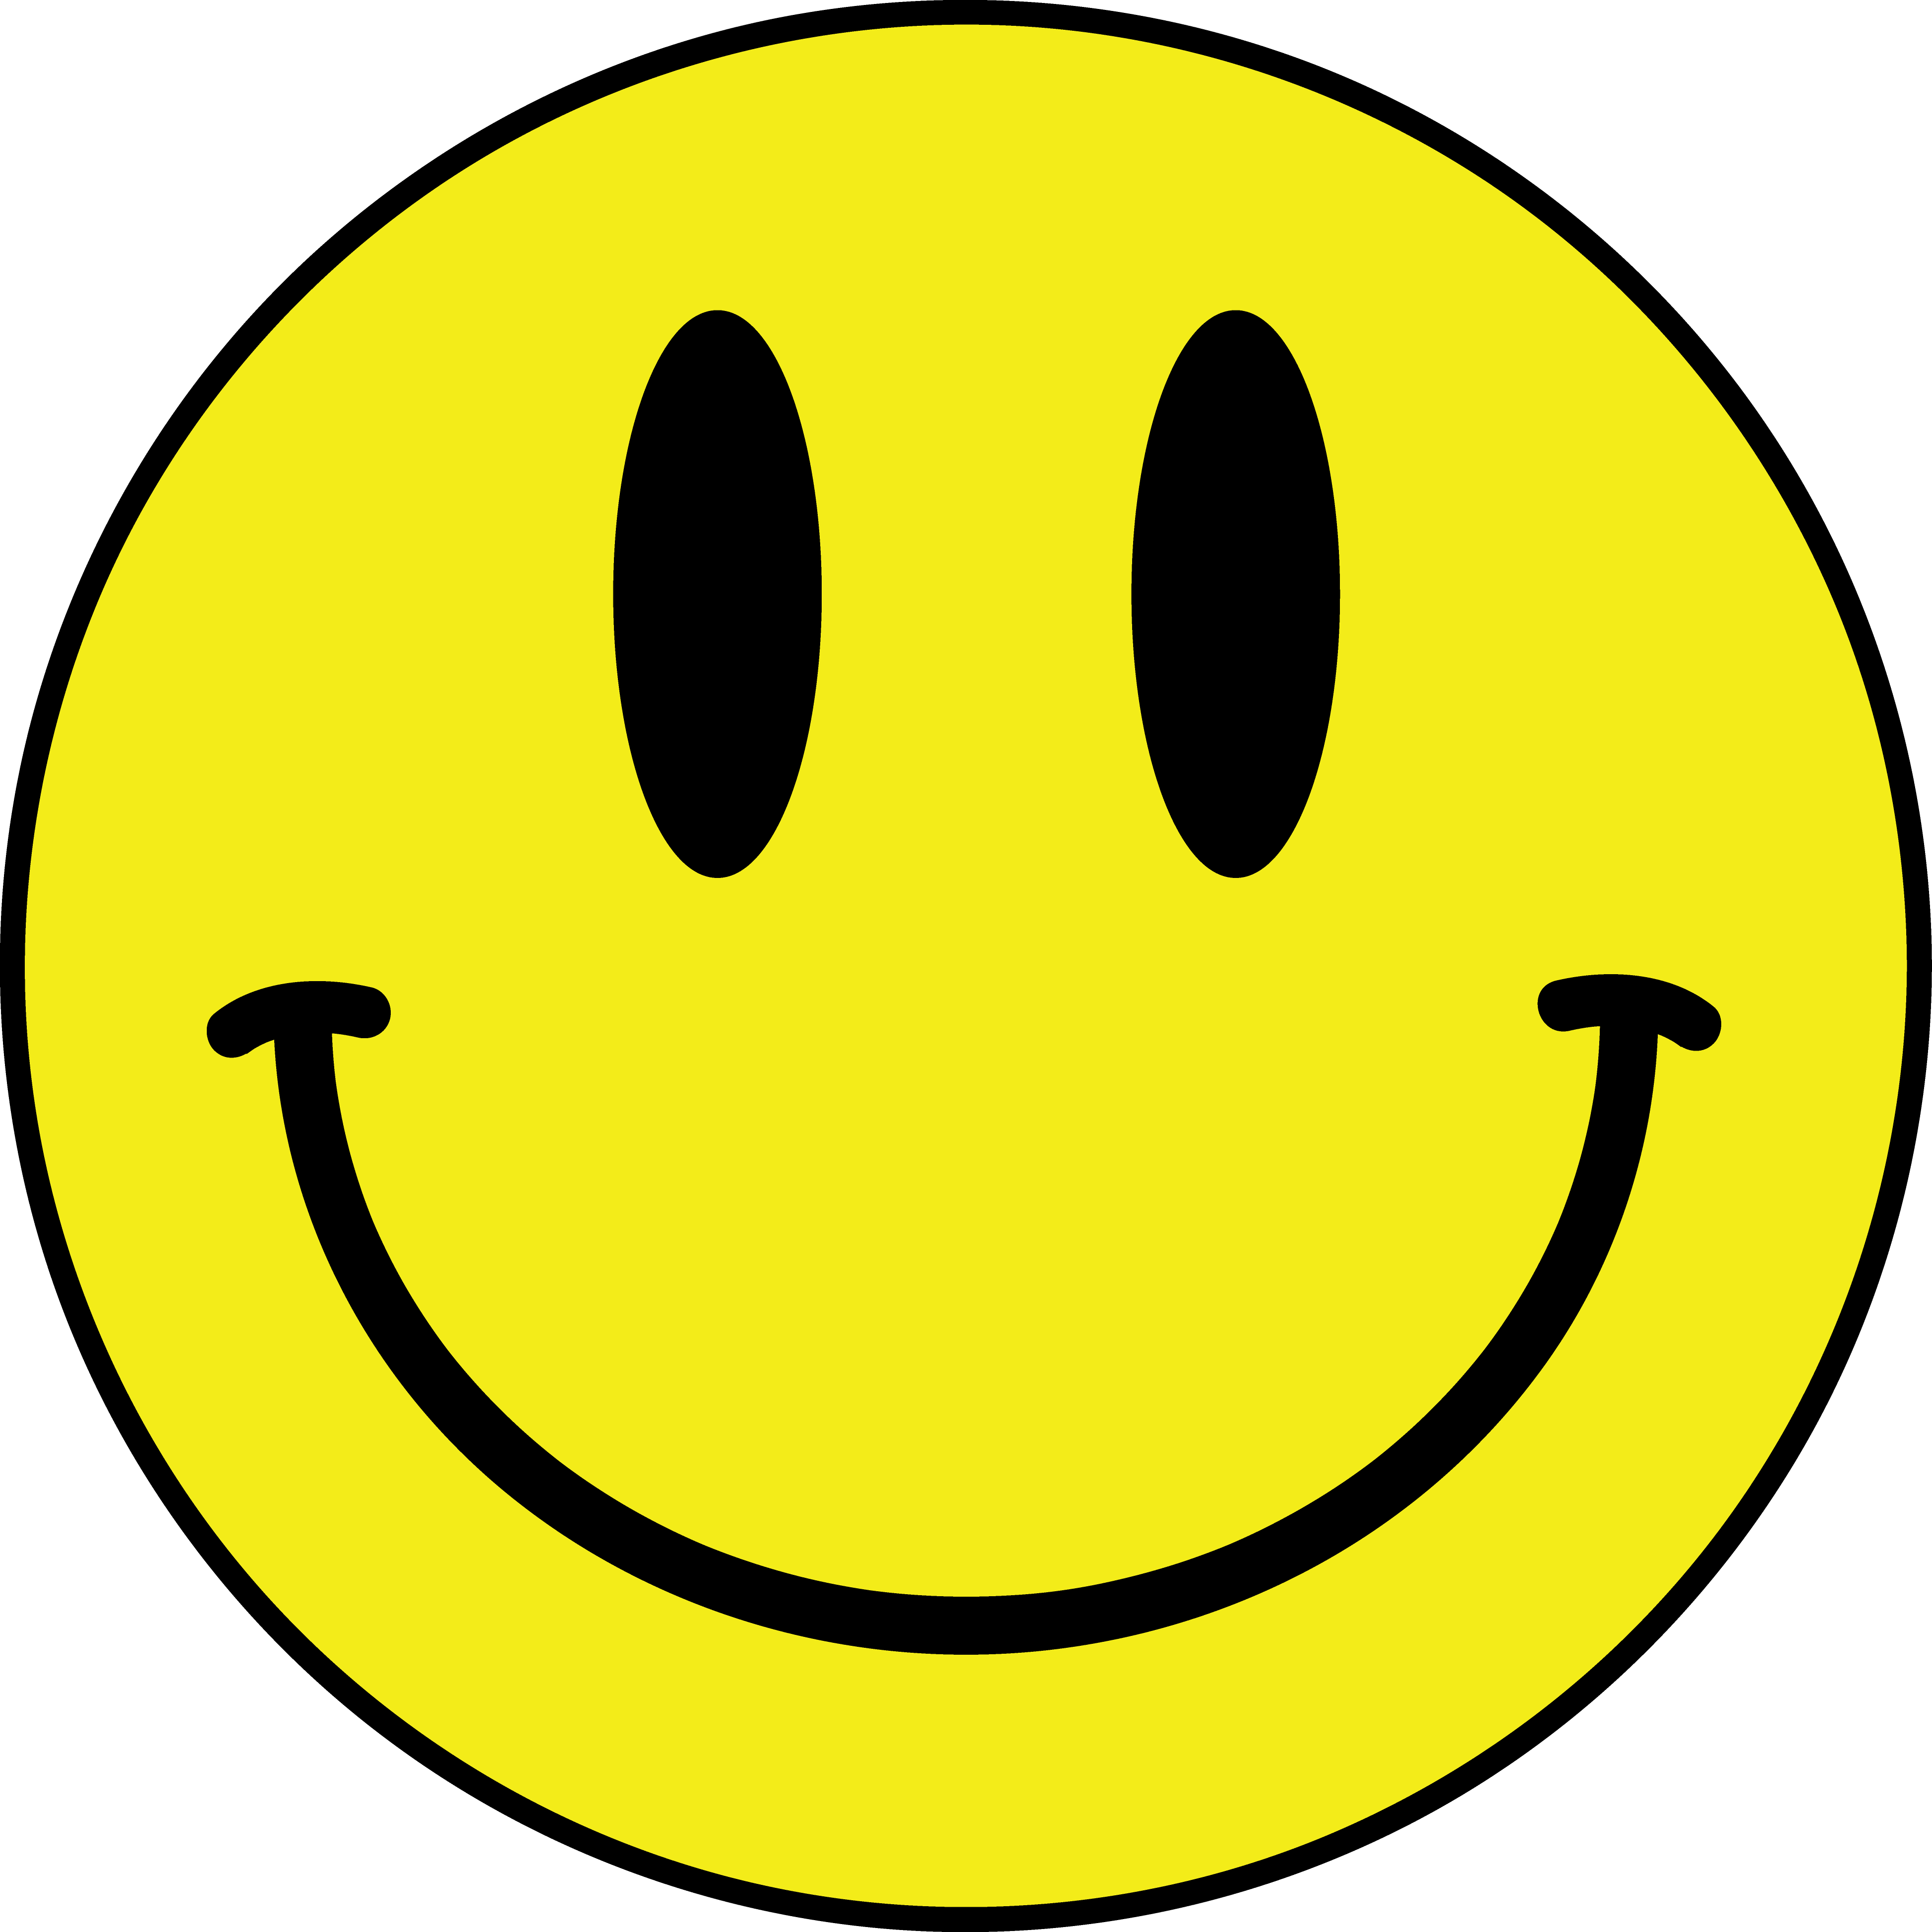 Happy smiley png. Looking image purepng free